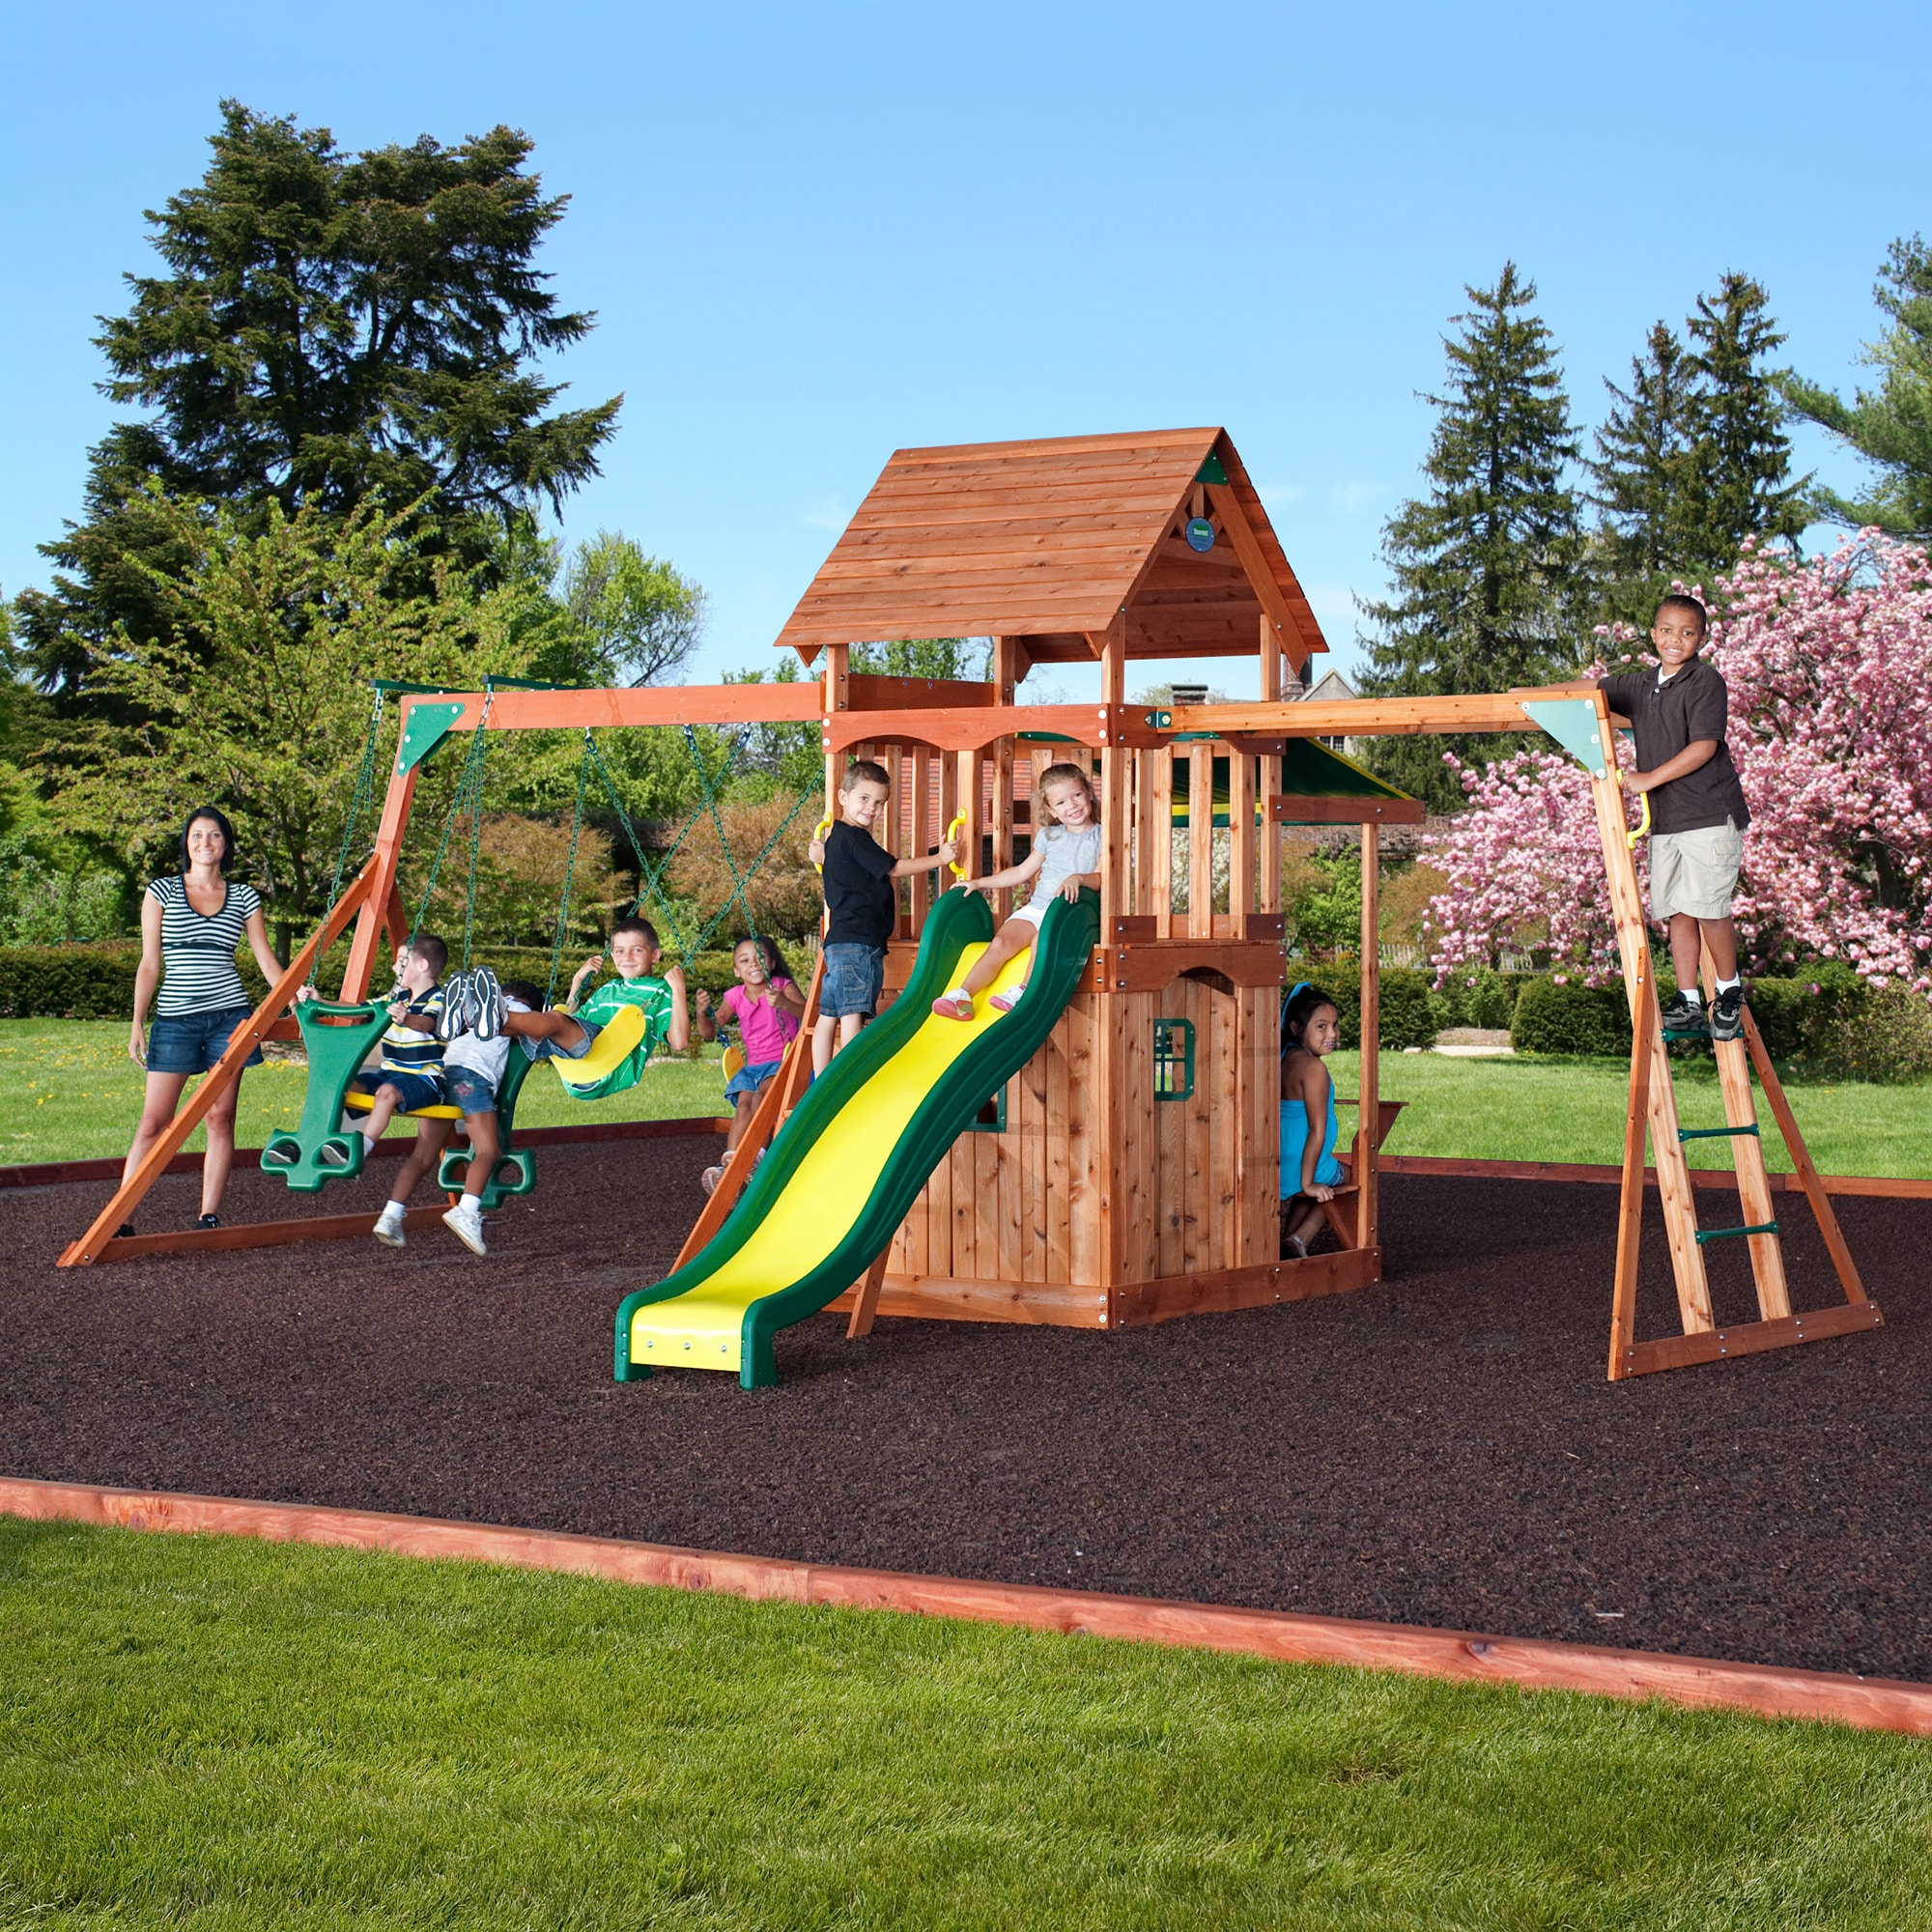 toys somerset mount product green set sports swing backyard brown all cedar triumph wood swingset discovery